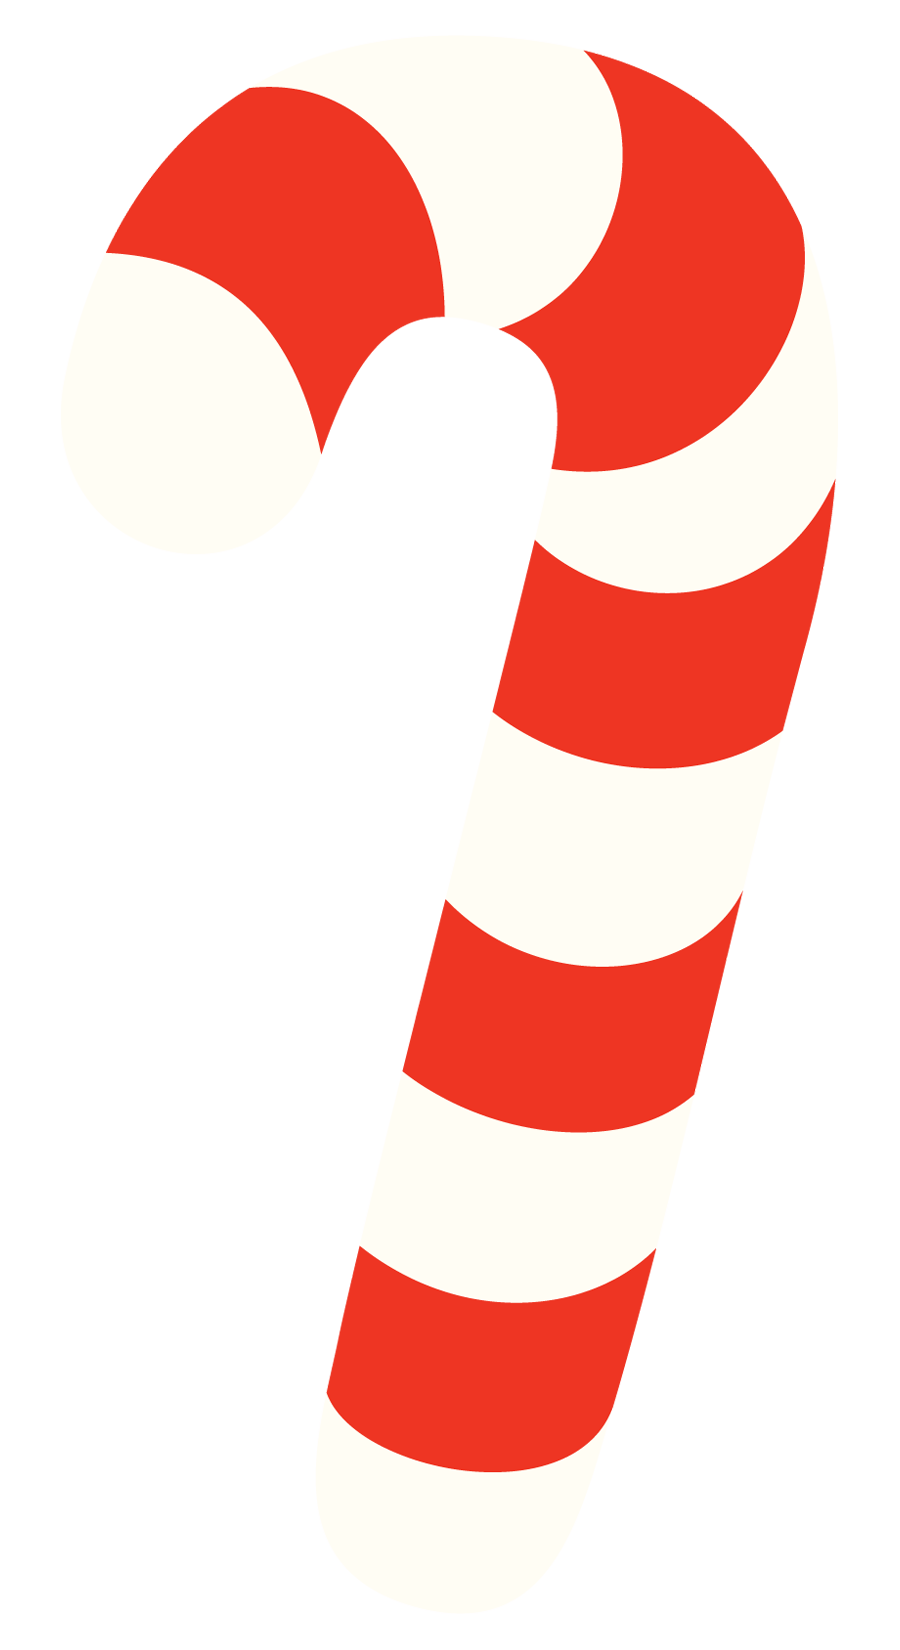 Christmas Candy Png Image Christmas Candy Christmas Candy Cane Candy